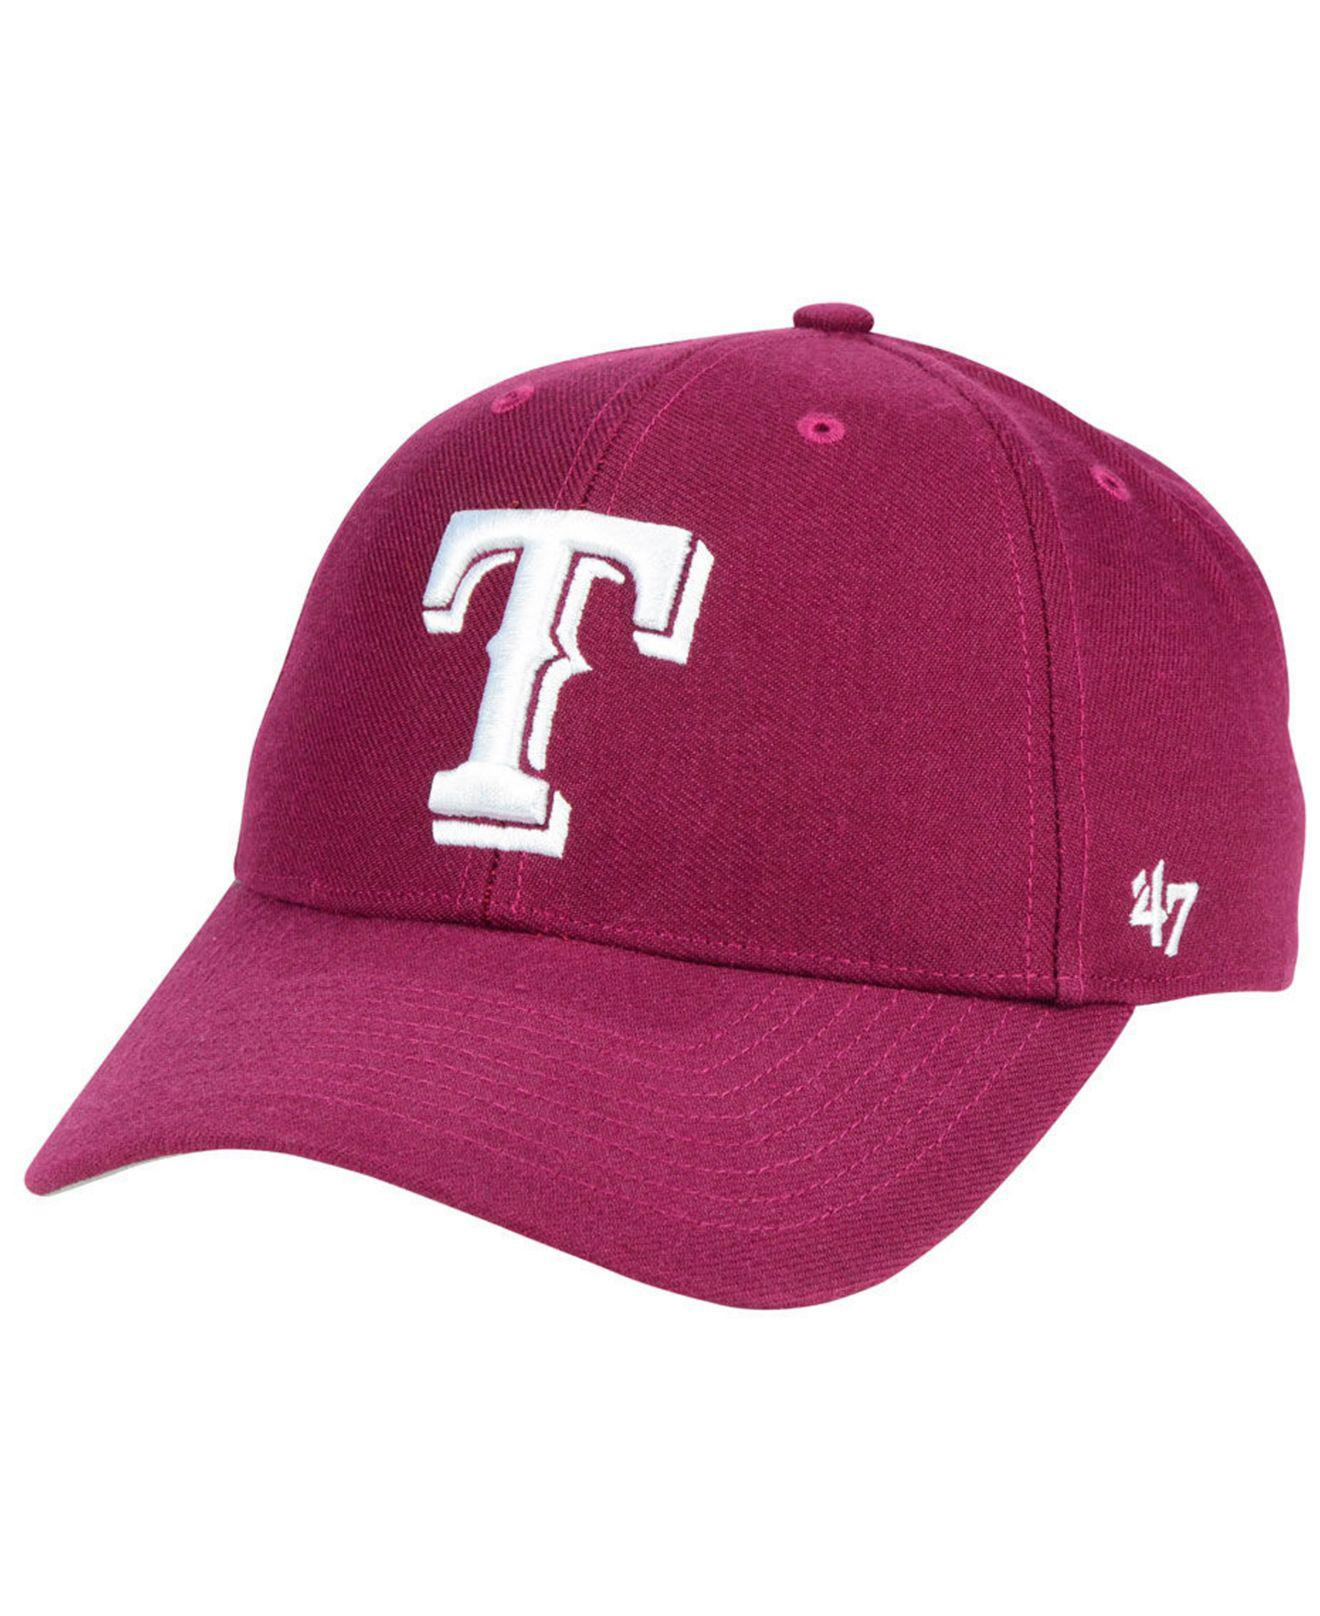 newest a48cb 916c3 ... get lyst 47 brand texas rangers cardinal mvp cap in red for men ad0d0  efe68